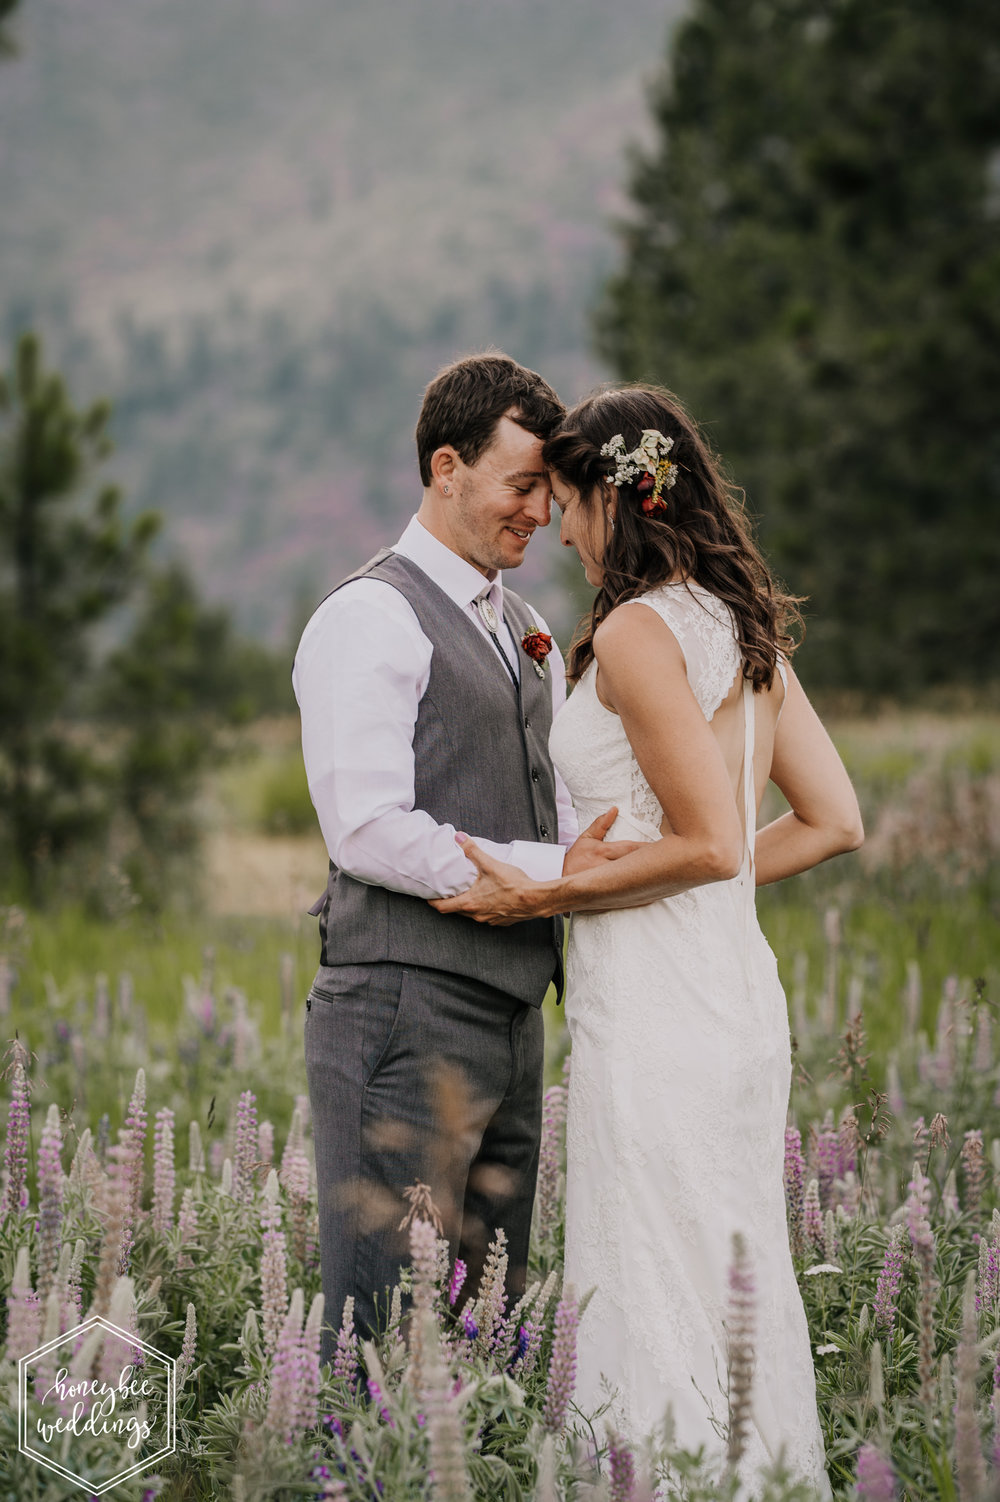 525 White Raven Wedding_Montana Wedding Photographer_Honeybee Weddings_ Meghan Maloney + Arza Hammond 2018-9460.jpg